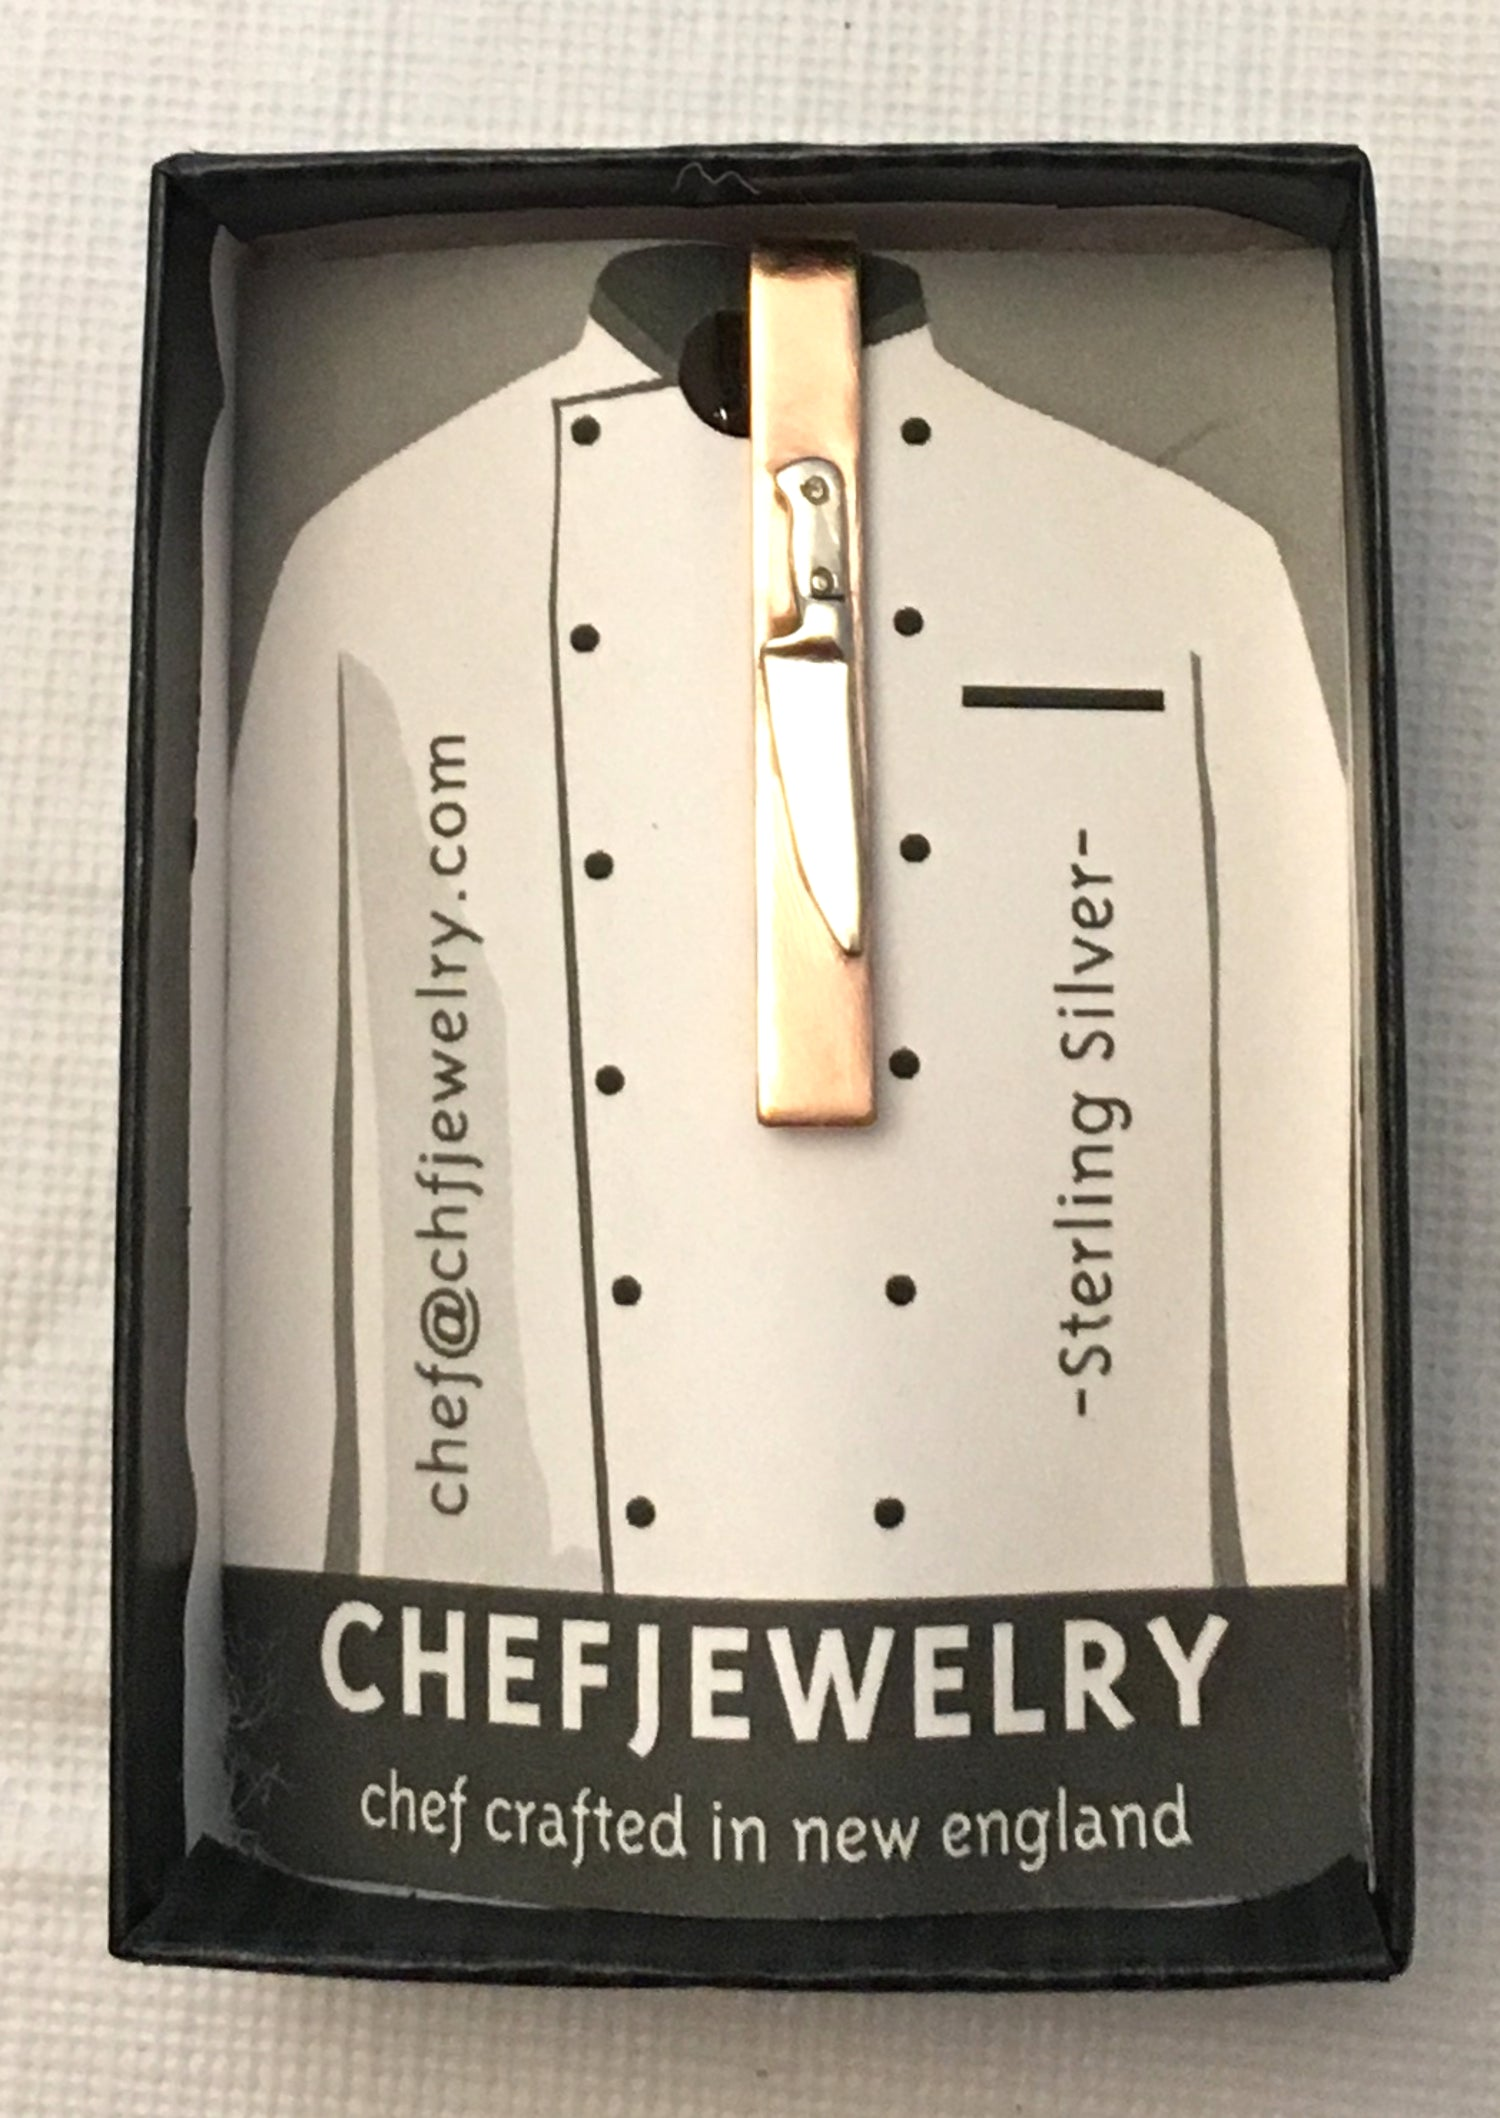 your tie clip will arrive with custom chefjewelry packaging